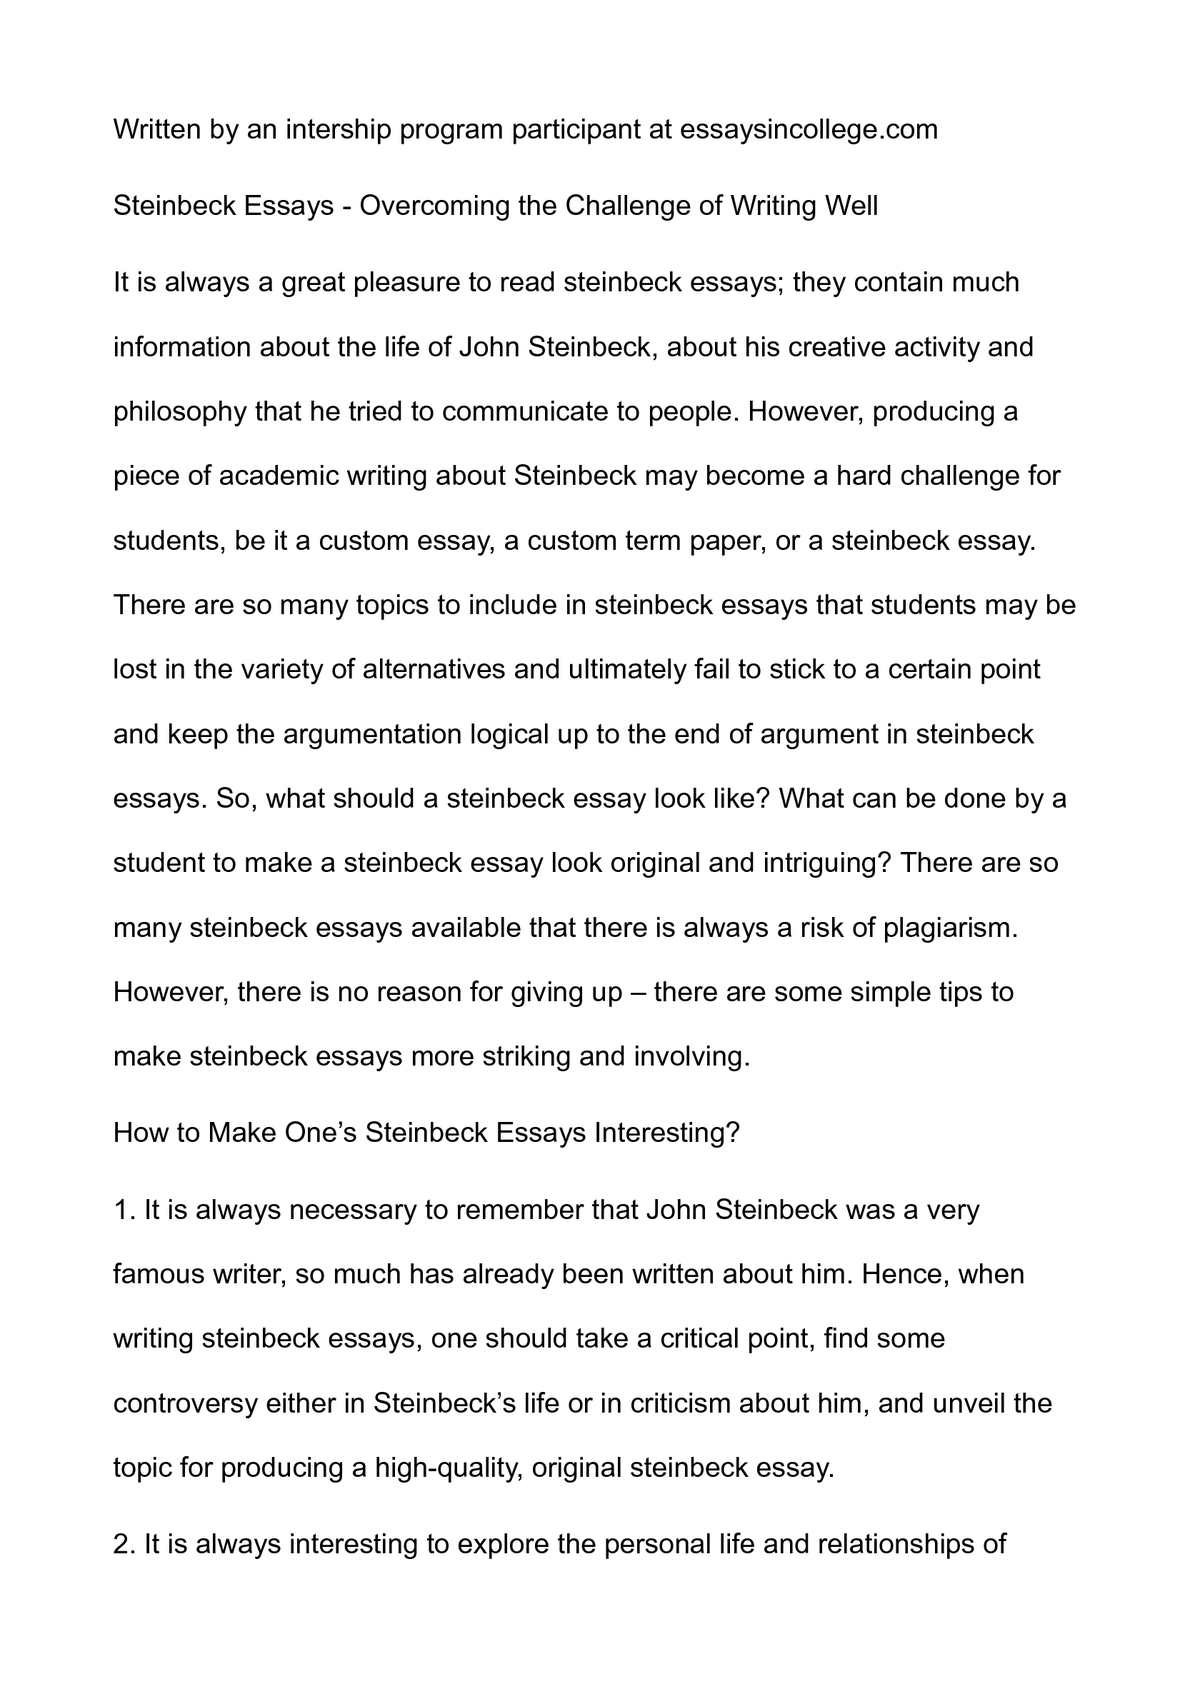 007 How An Essay Should Look P1 Unique What A Persuasive Like Does Introduction In Argumentative Full